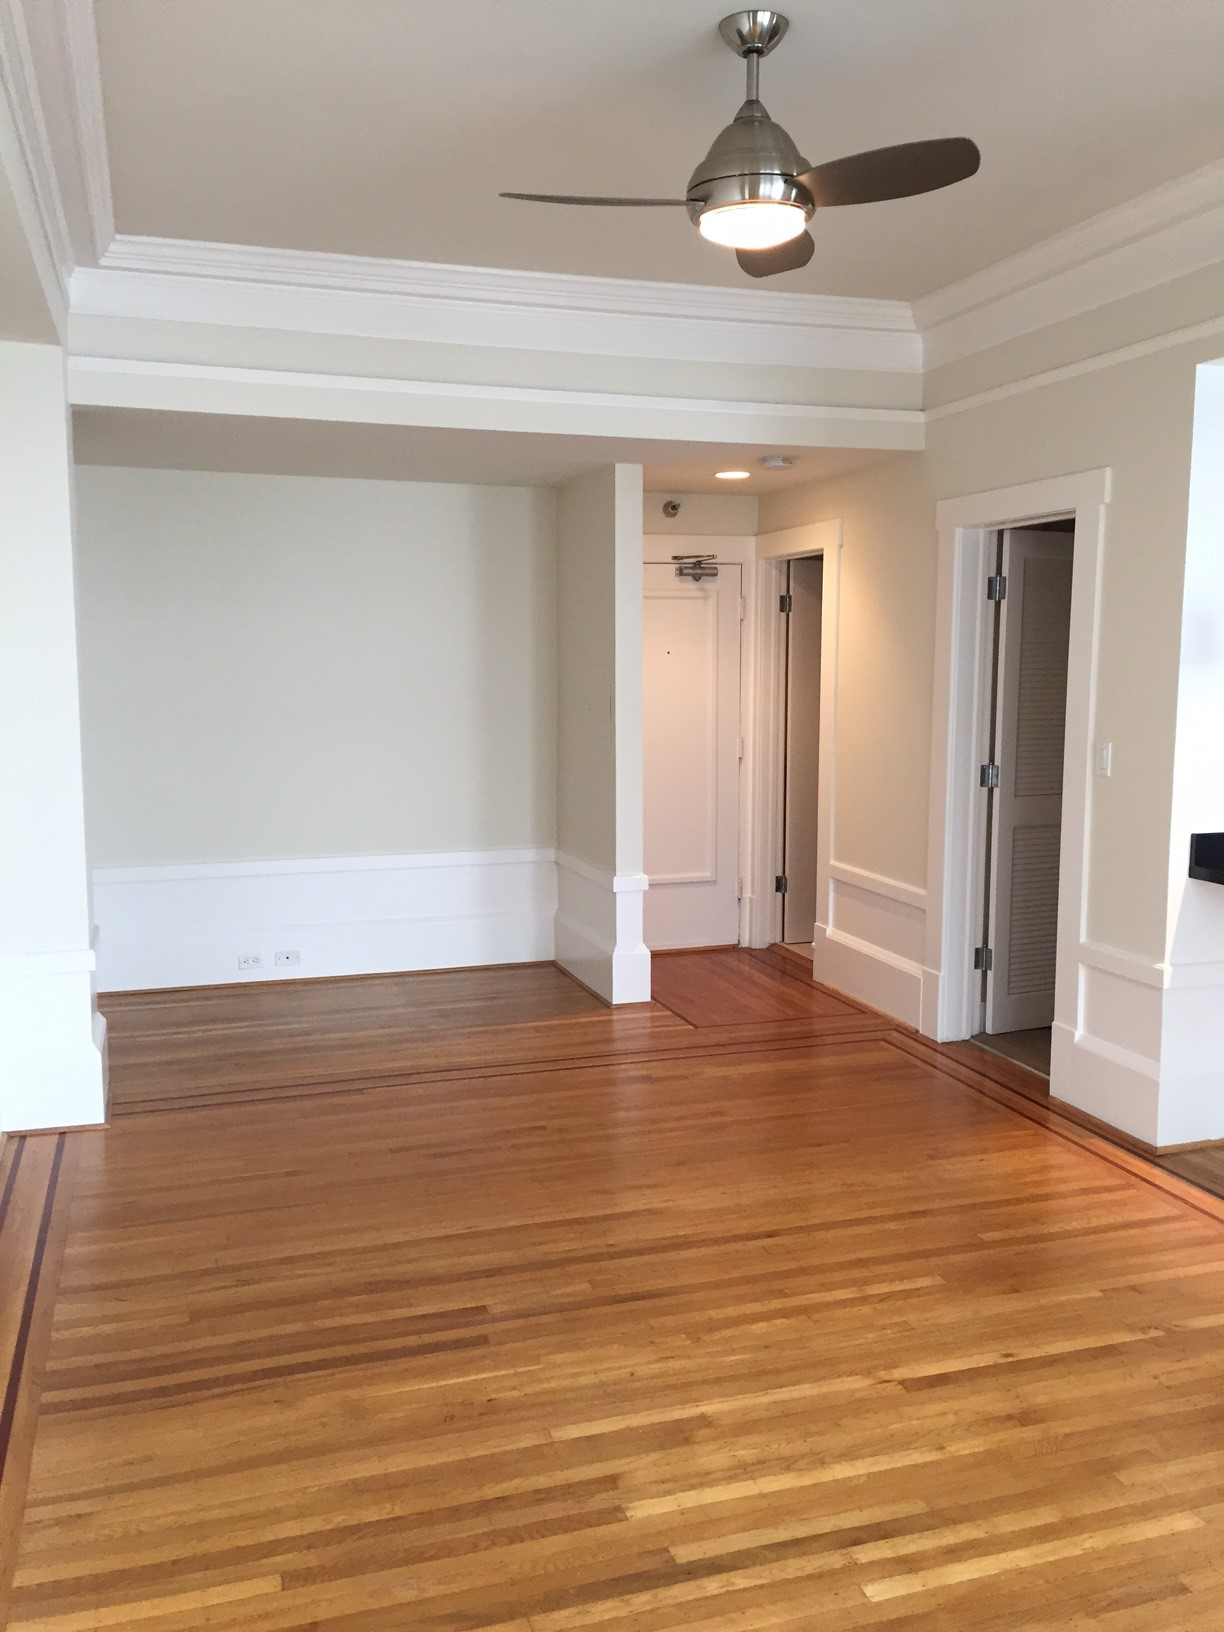 512 Van Ness, San Francisco, California, United States 94102, ,1 BathroomBathrooms,Apartment,Studio,Van Ness,1064